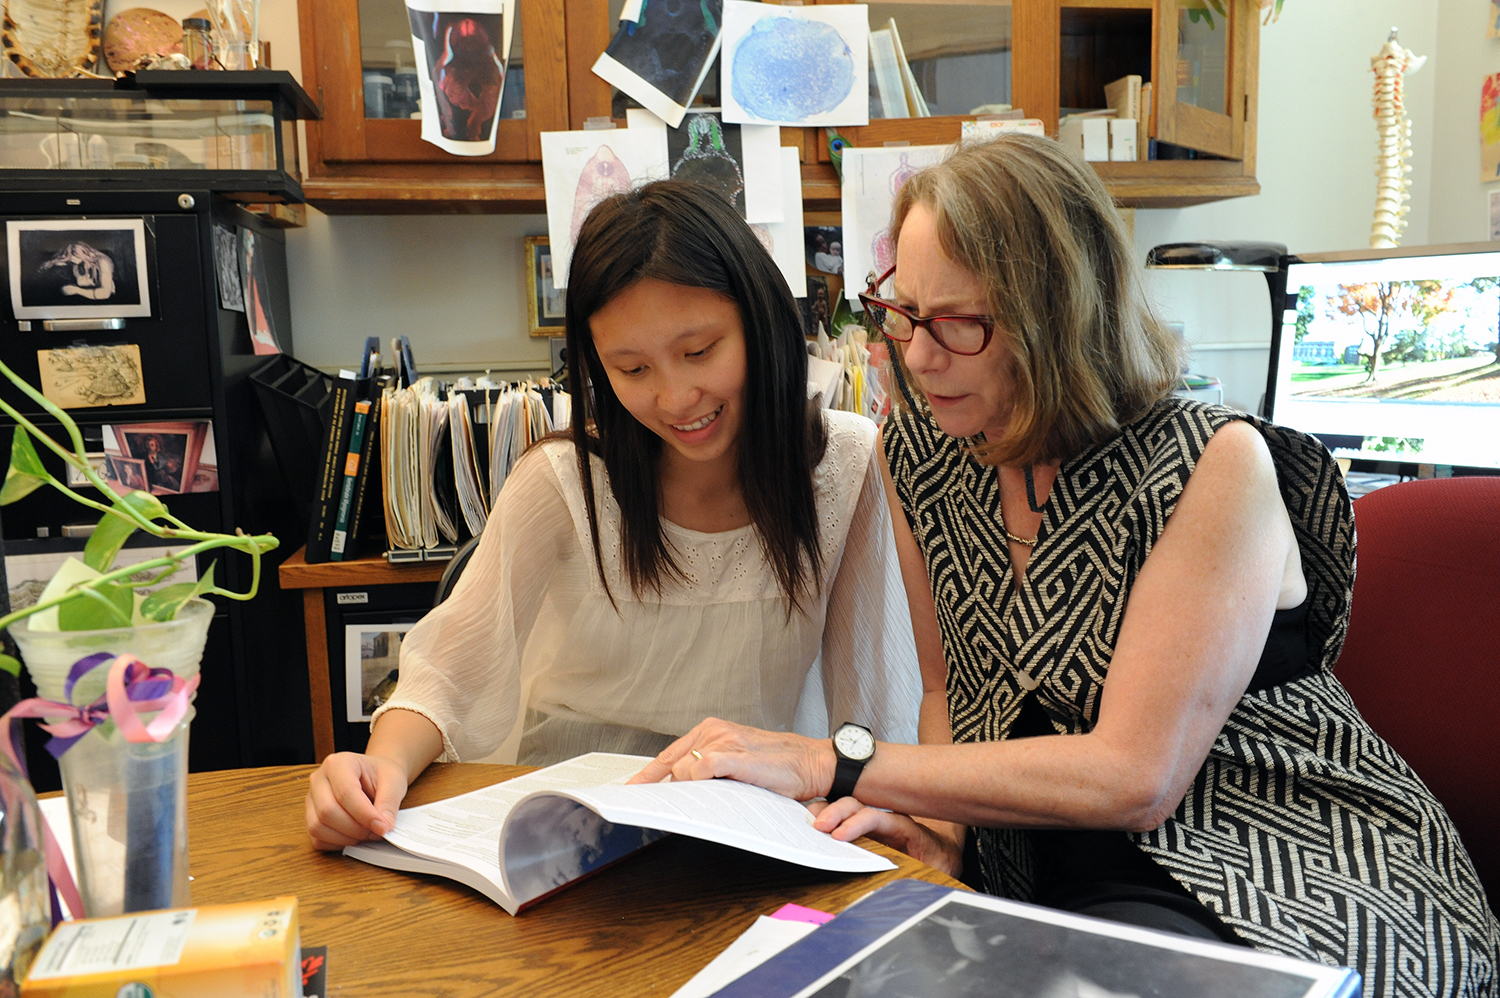 Annie Burke, professor of biology and director of graduate studies, met with Chloe Qiu '19